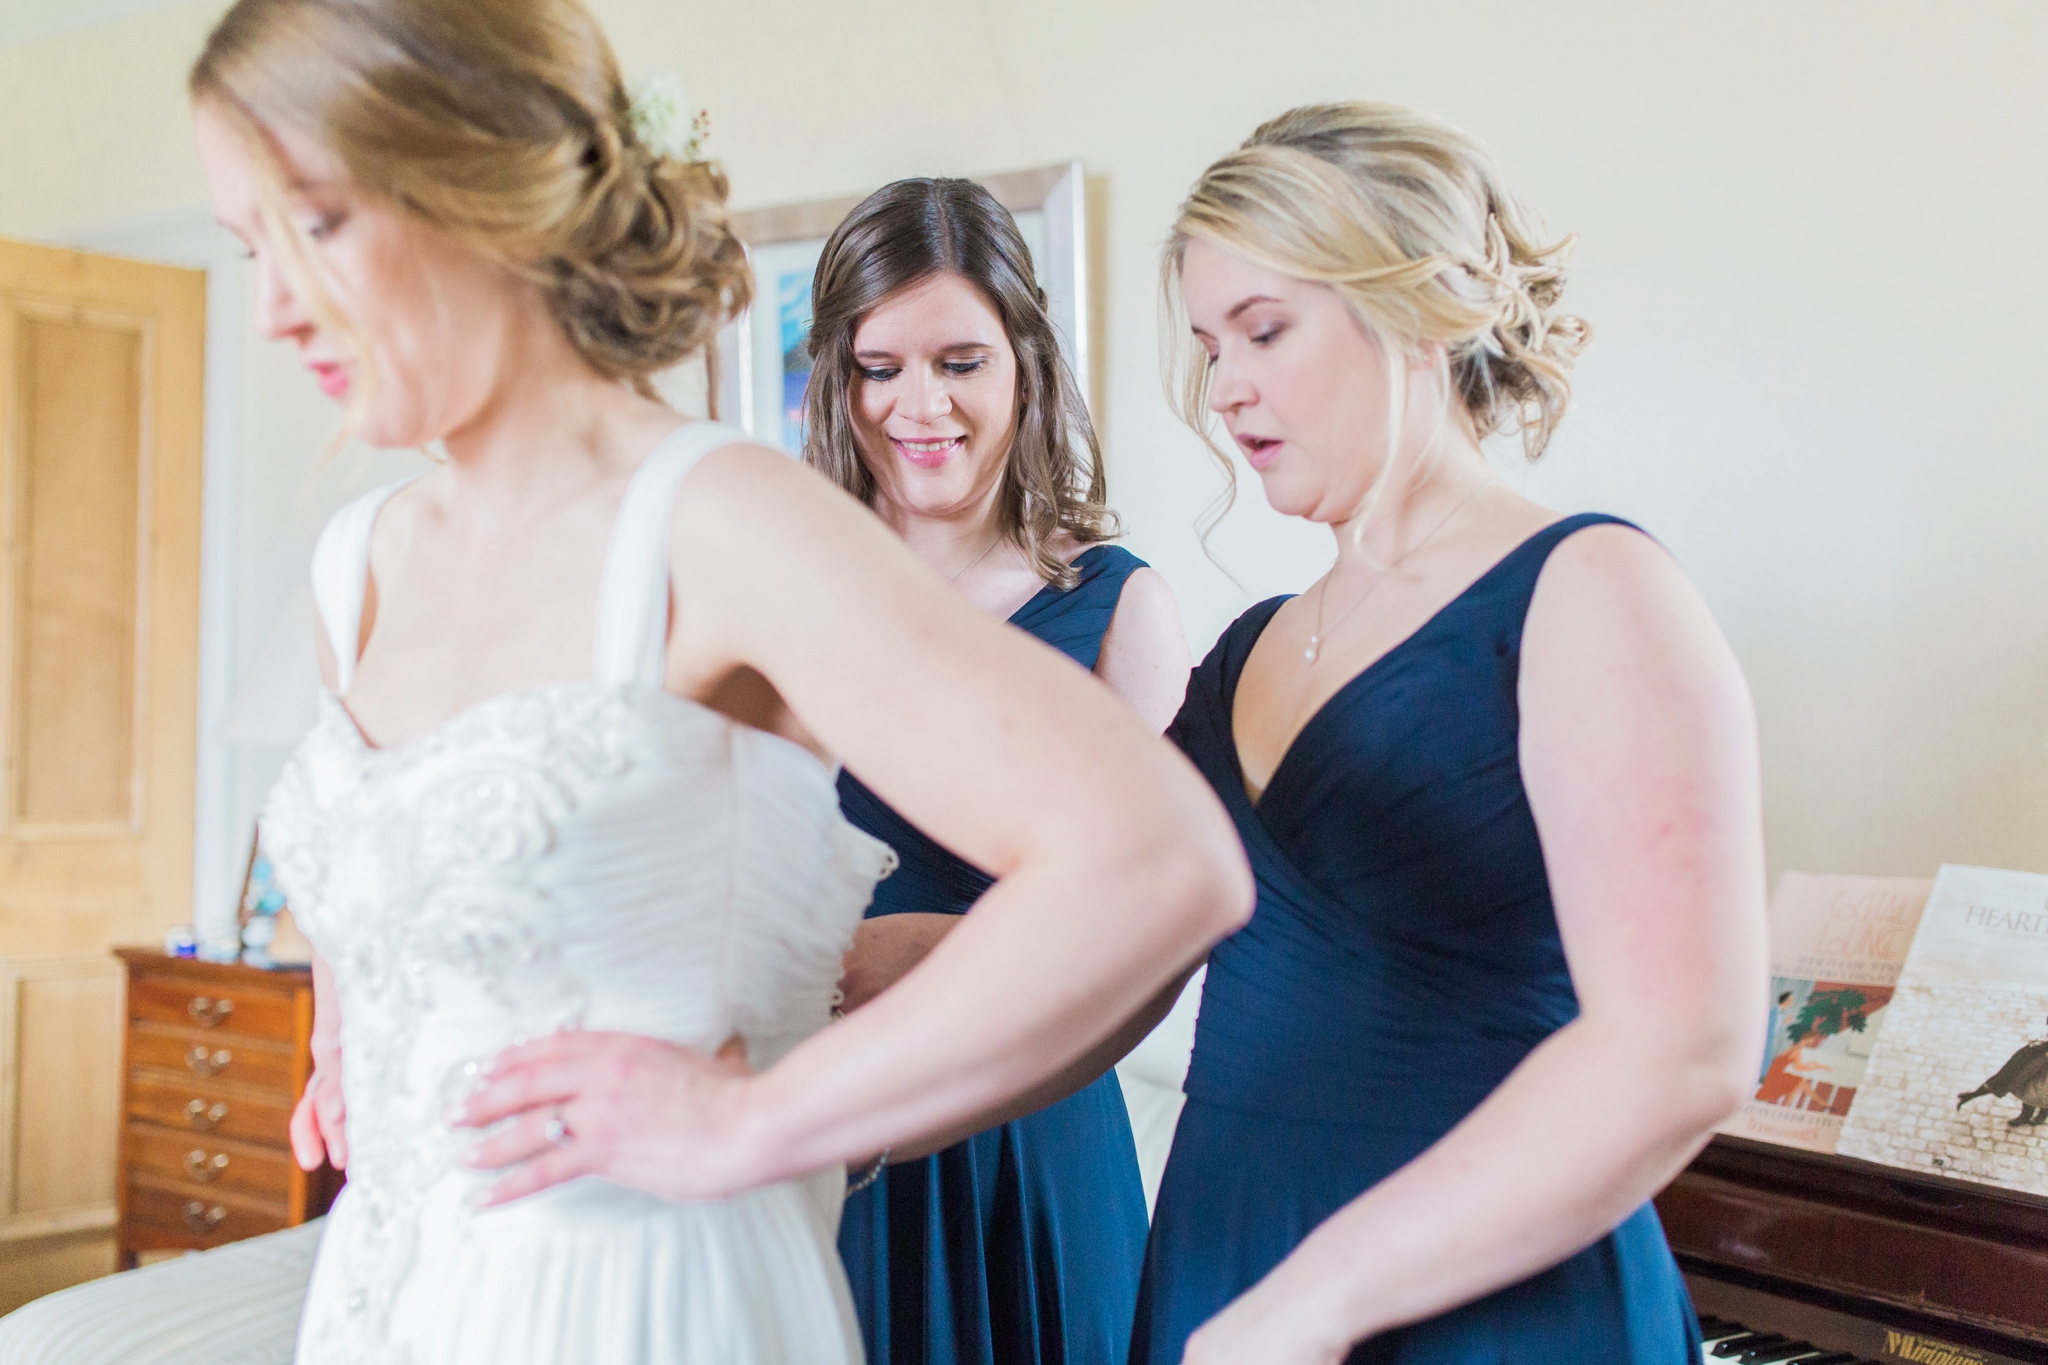 Suzanne_li_photography_kirknewton_wedding_0017.jpg